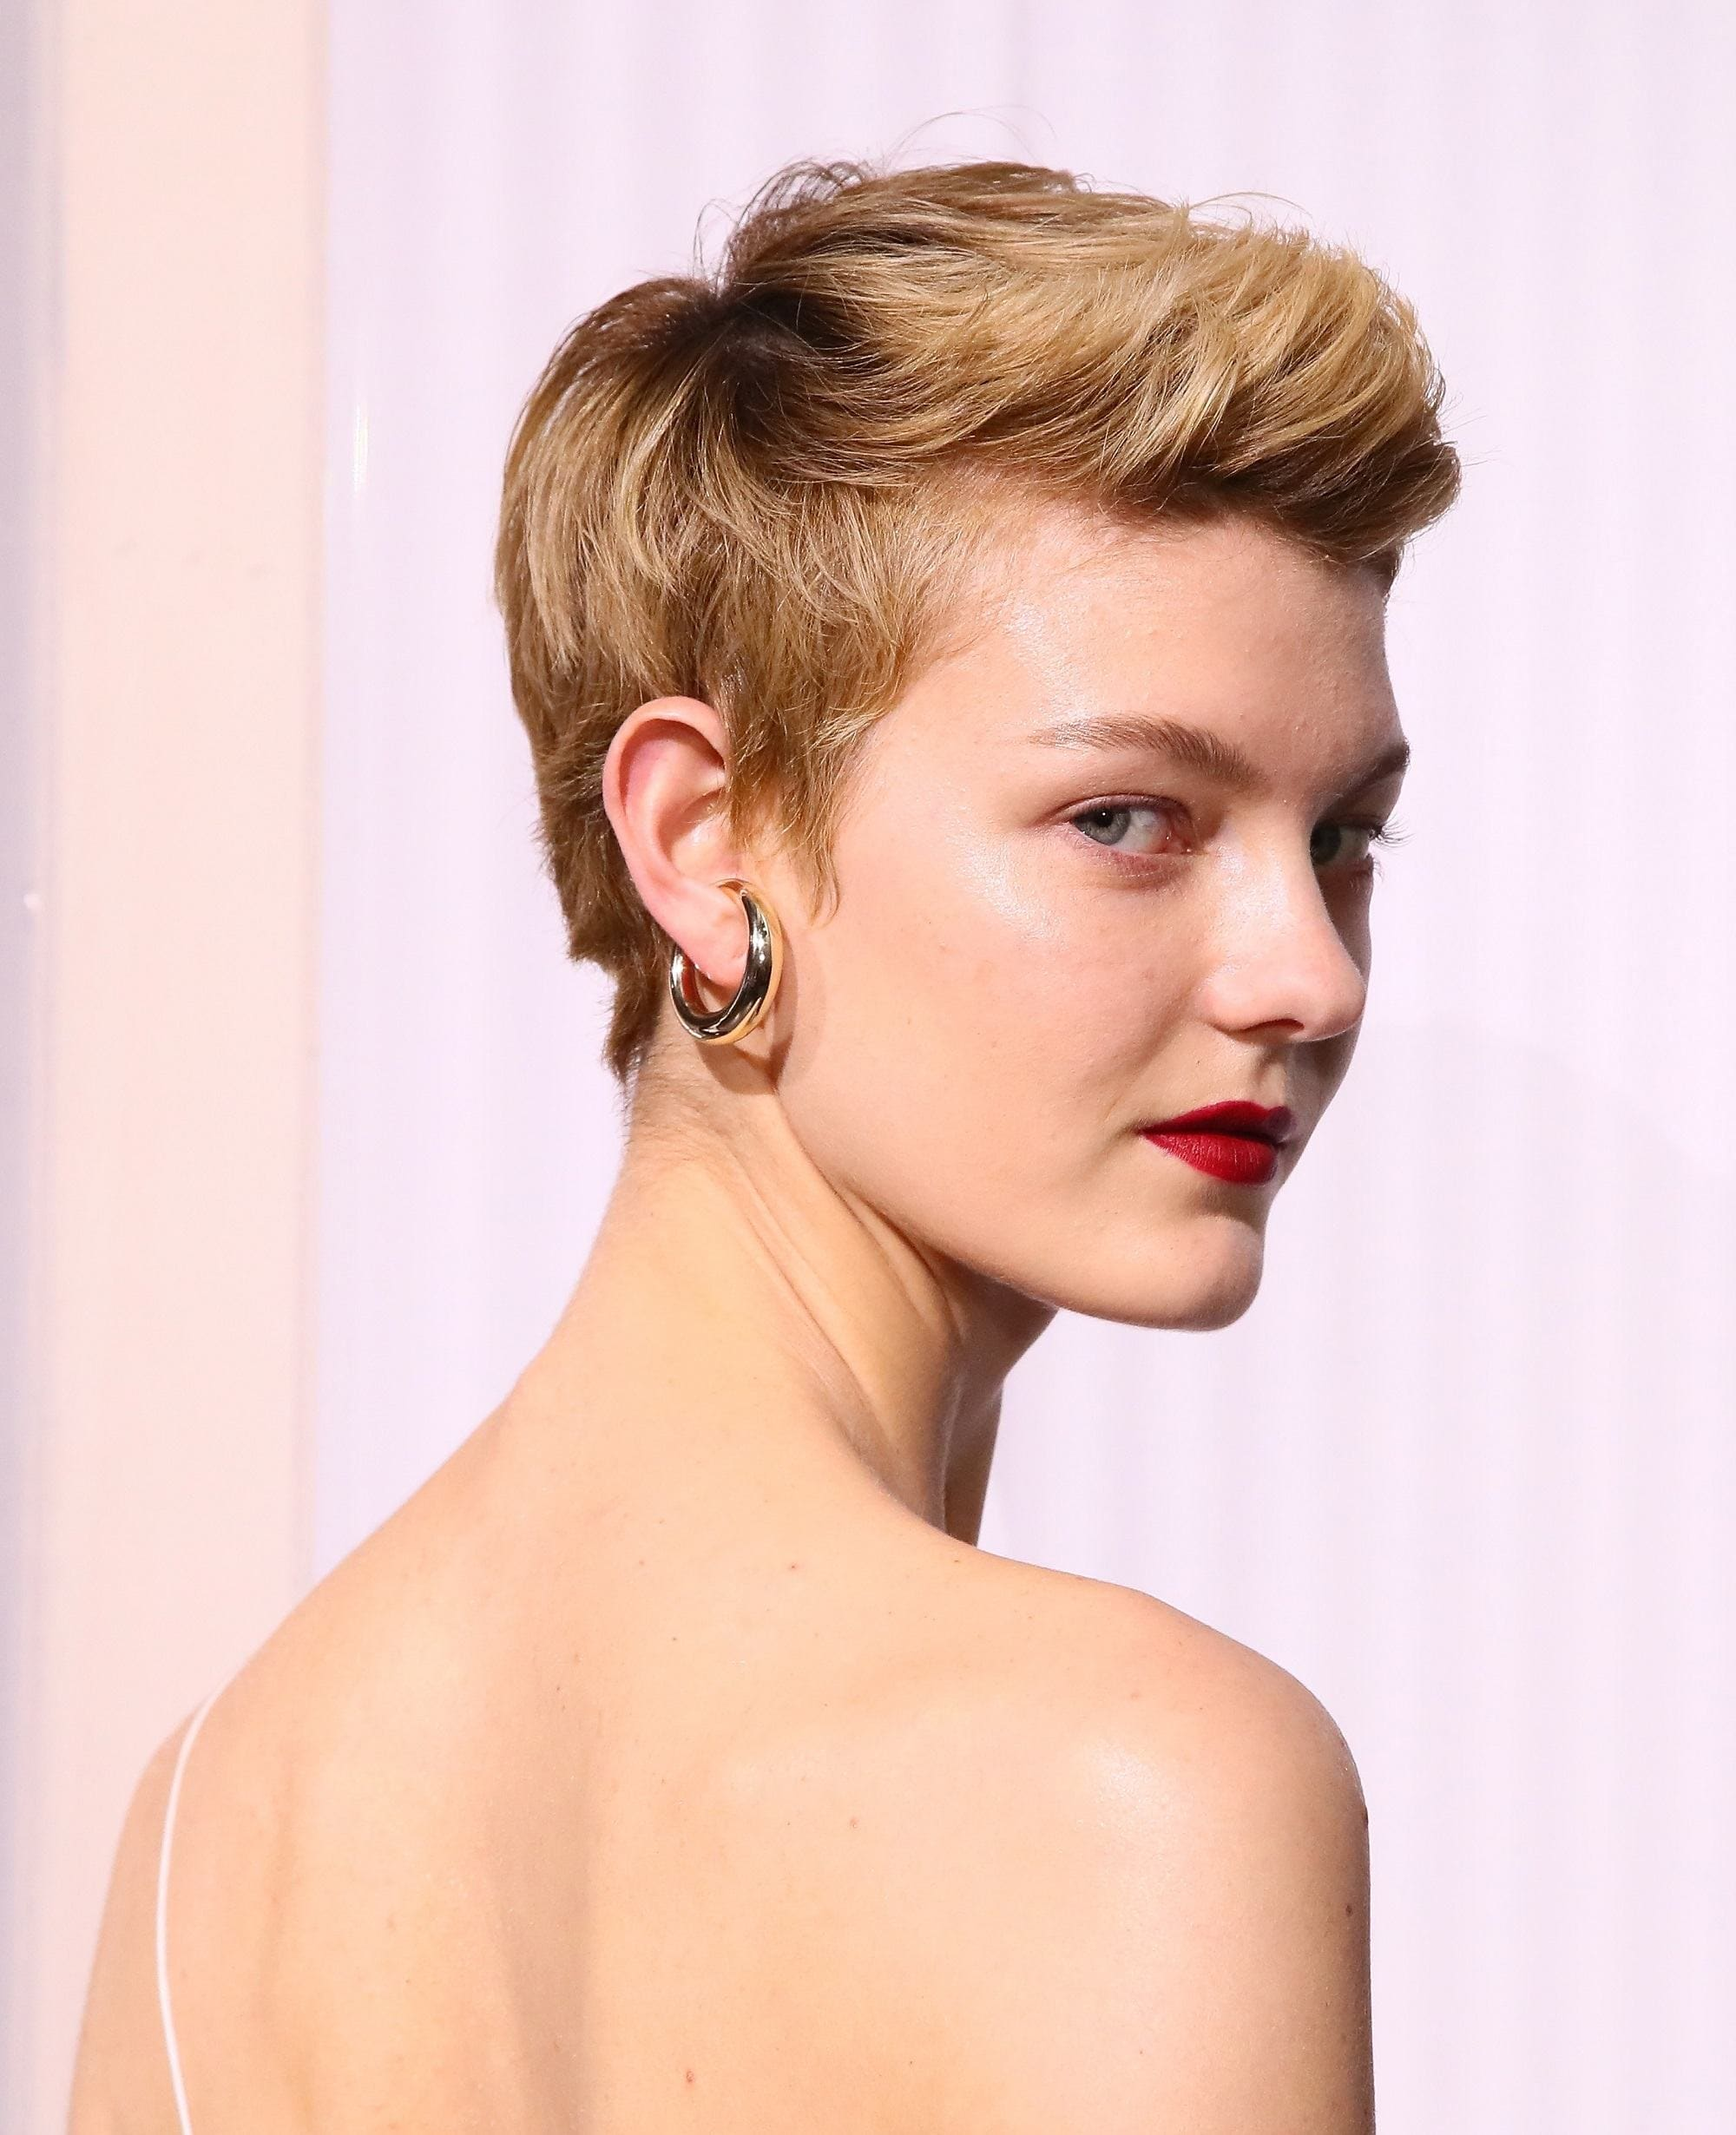 NYFW hair must-haves: Closeup shot of a woman with short blonde pixie cut hair